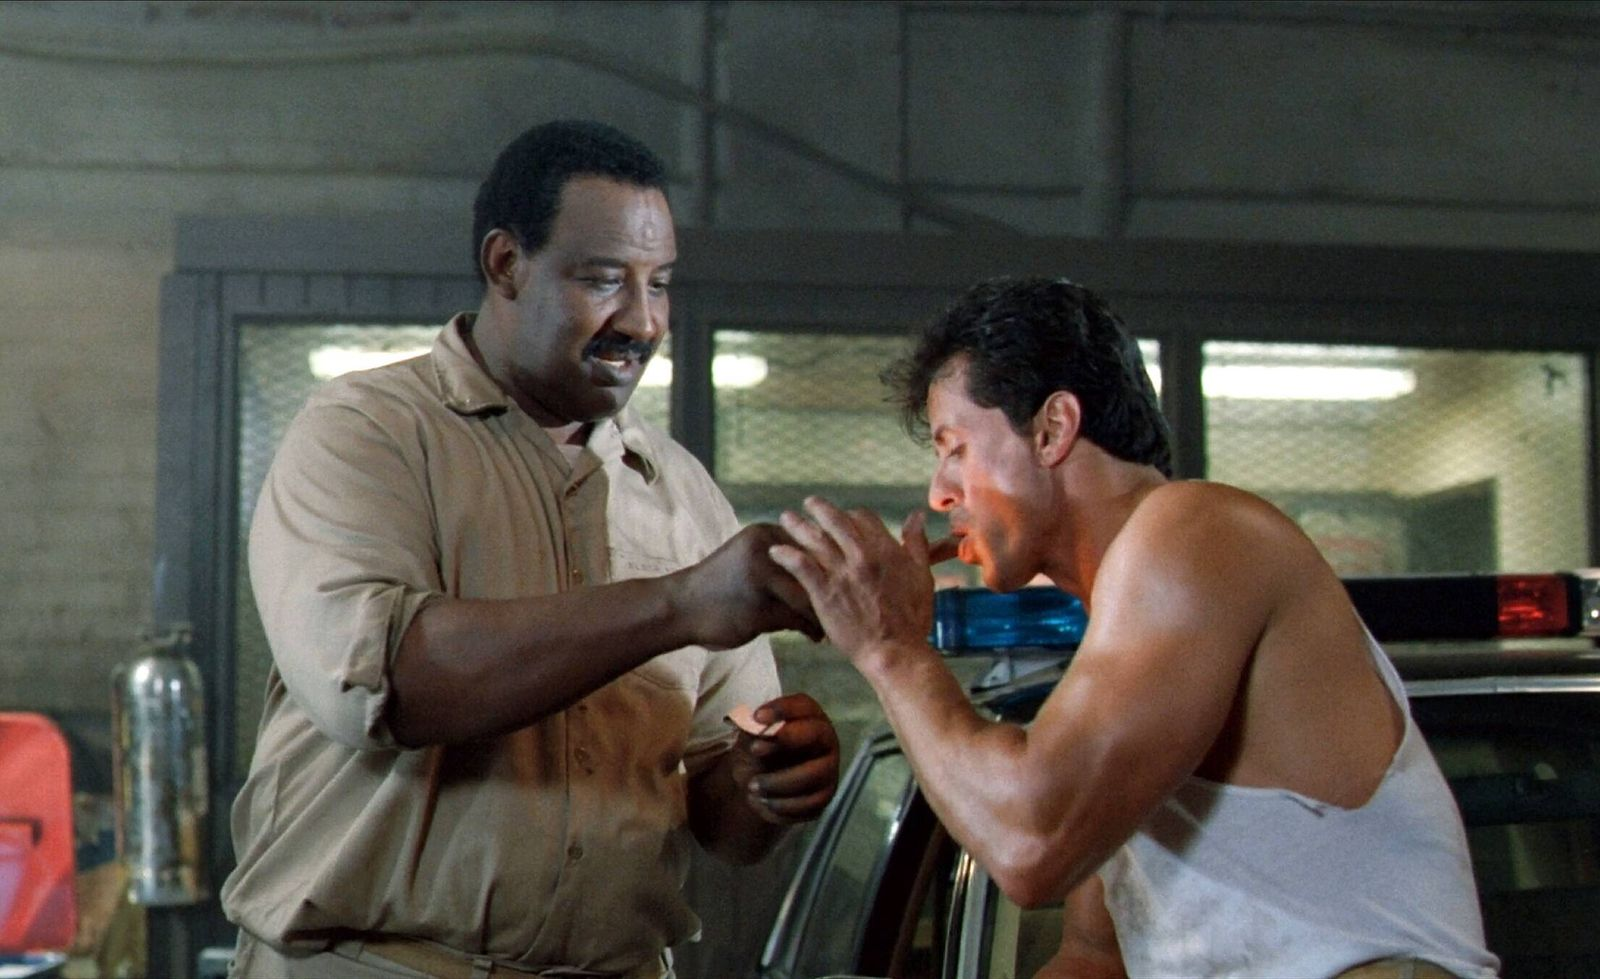 Frank Mcrae & Sylvester Stallone Characters: Eclipse, Frank Leone Film: Lock Up (1989) Director: John Flynn 04 August 19